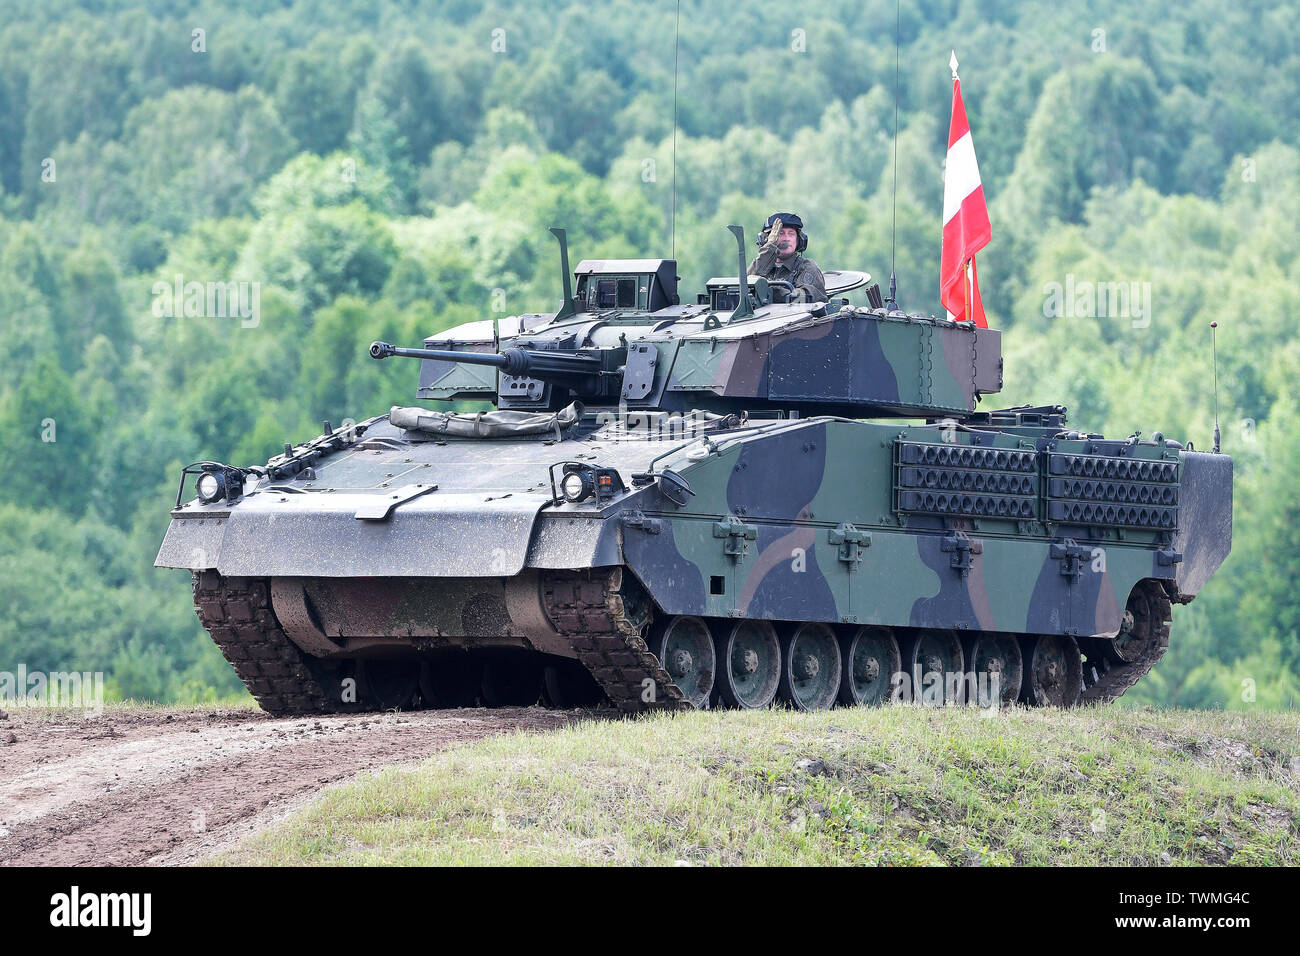 Strasice, Czech Republic. 21st June, 2019. Austrian Army's Ascod Ulan fighting vehicle was presented during the Ground Force Day Bahna 2019, presentation of military equipment and activities, at former Brdy military training grounds in Strasice, Czech Republic, on June 21, 2019. Credit: Miroslav Chaloupka/CTK Photo/Alamy Live News - Stock Image